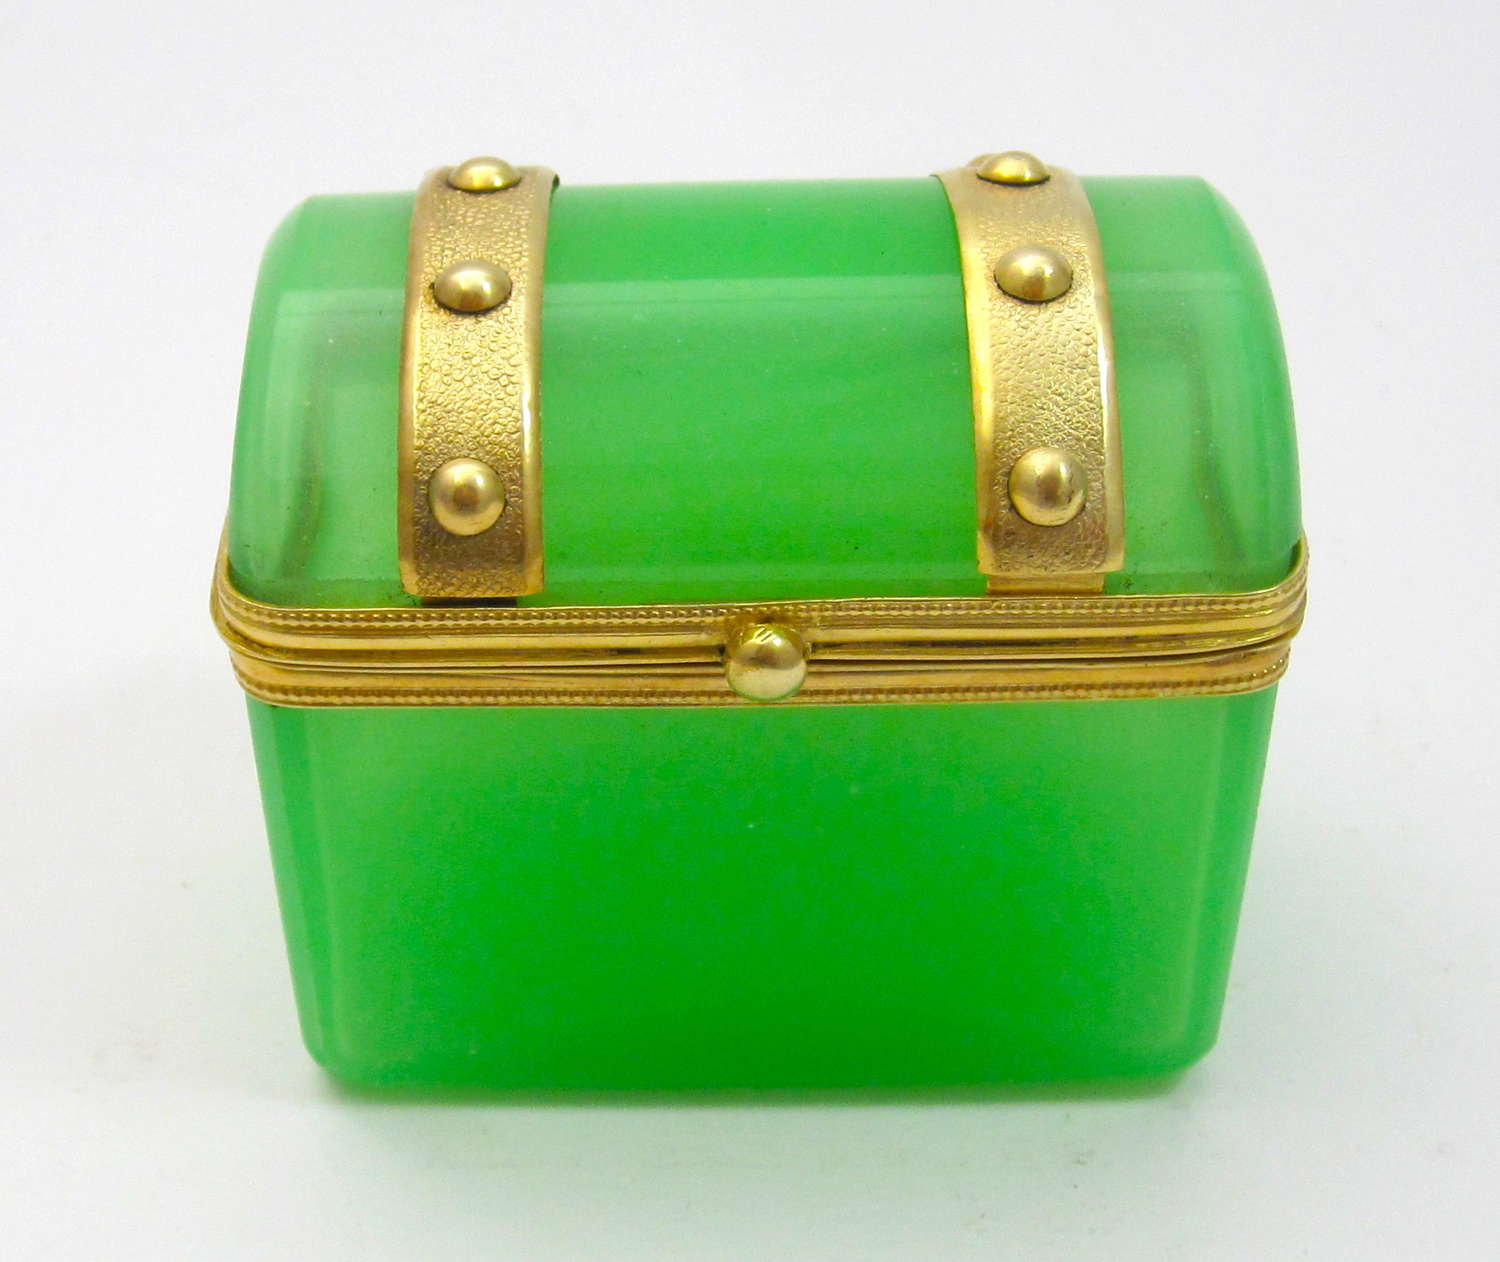 Antique Miniature French Green Opaline Casket